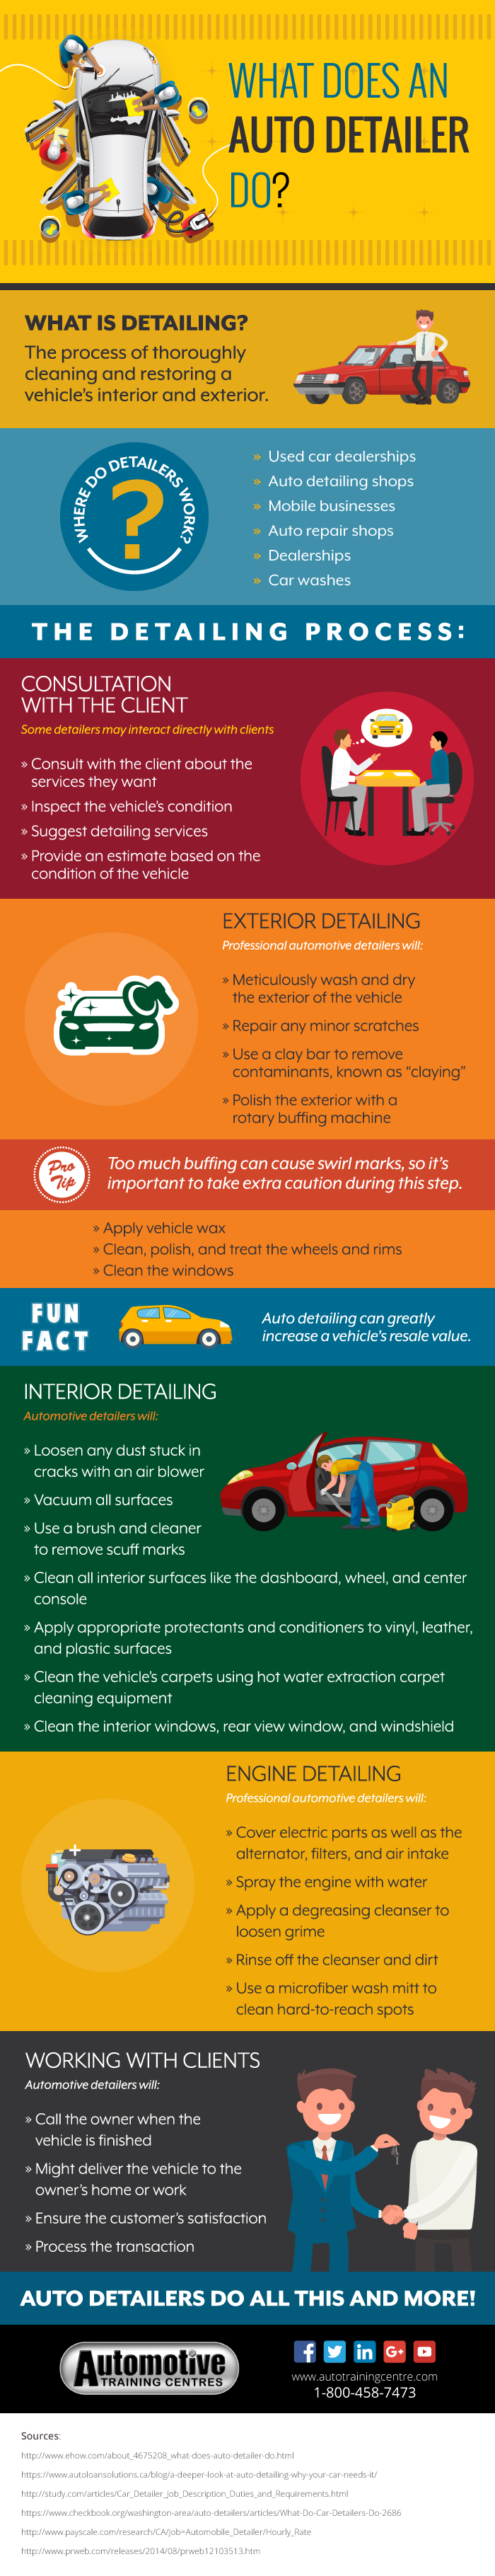 ATC Toronto_Infographic_What Does An Auto Detailer Do